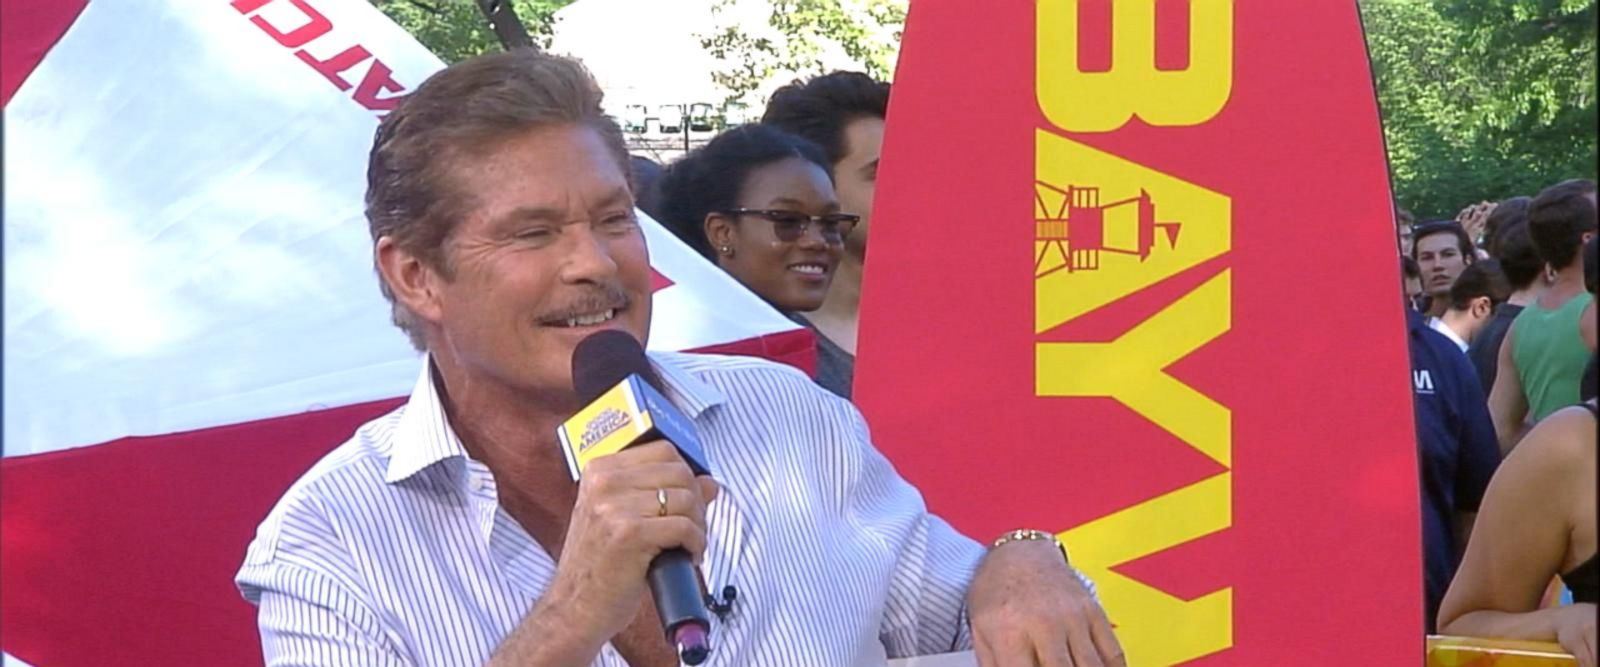 'Baywatch' star David Hasselhoff hit the gym for 6 weeks ...